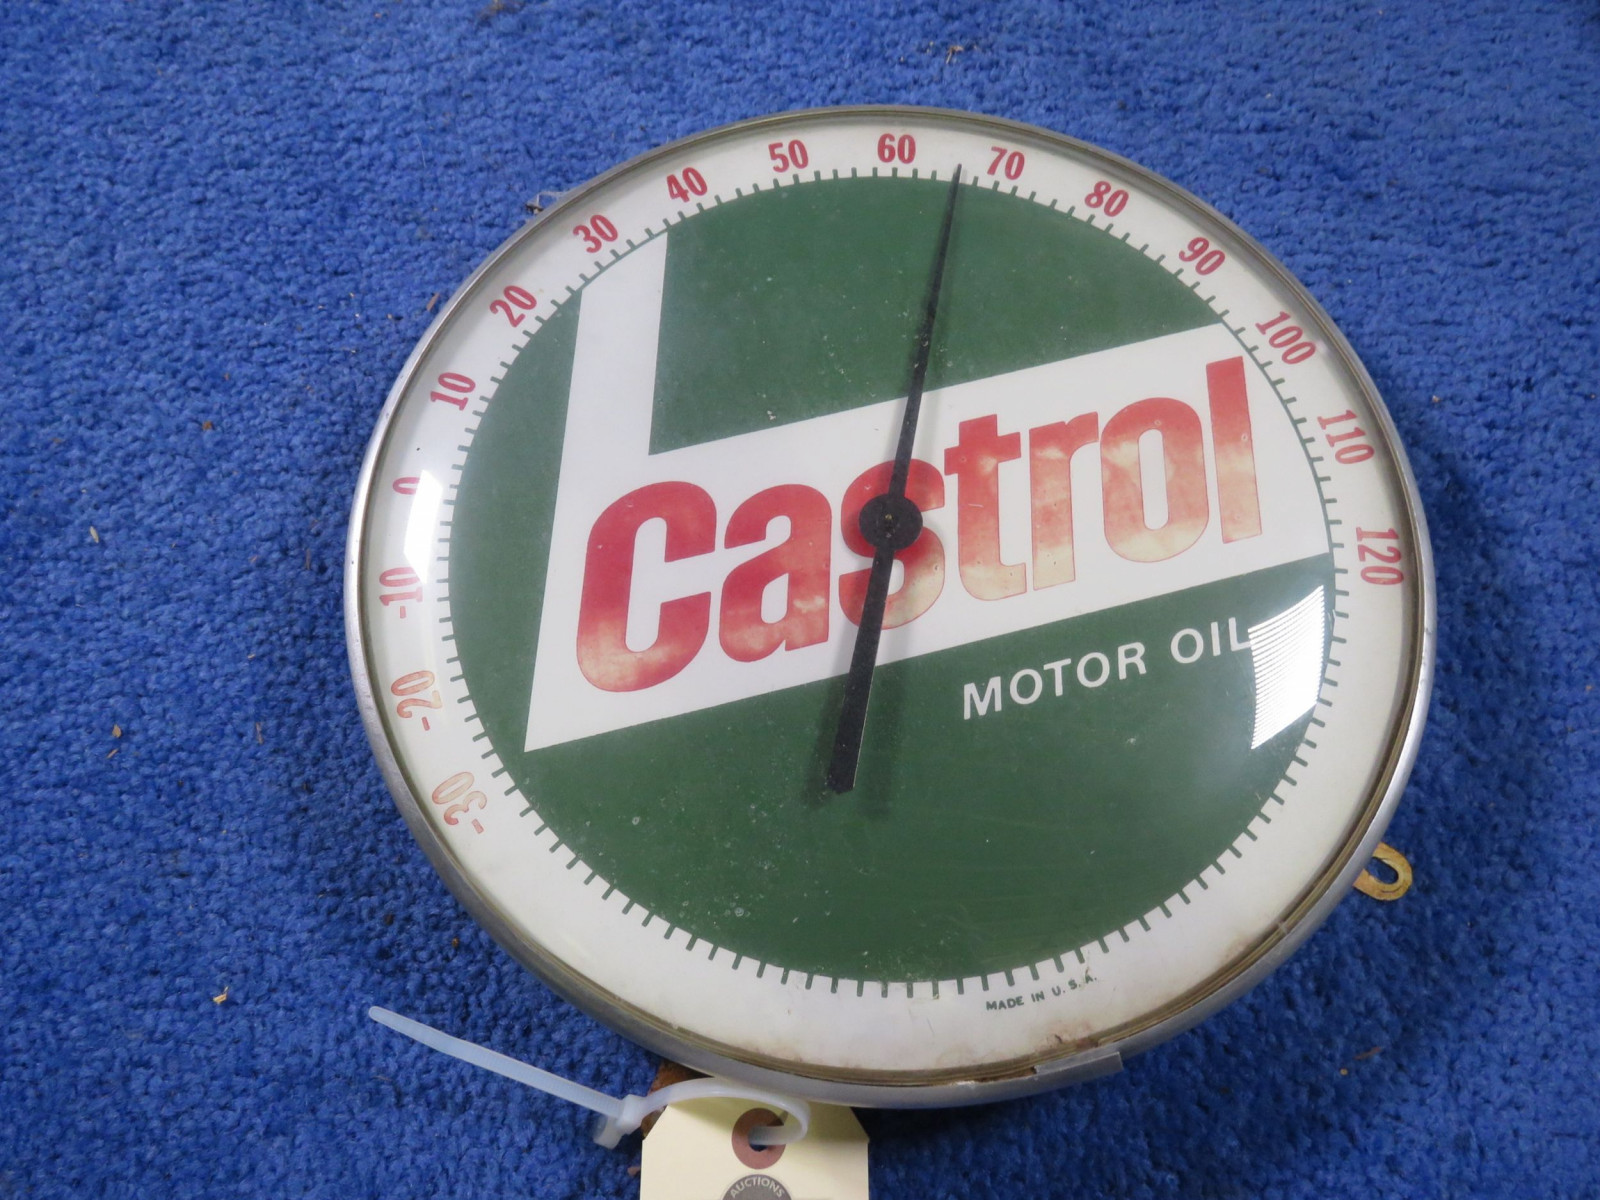 Castrol Thermometer - Image 1